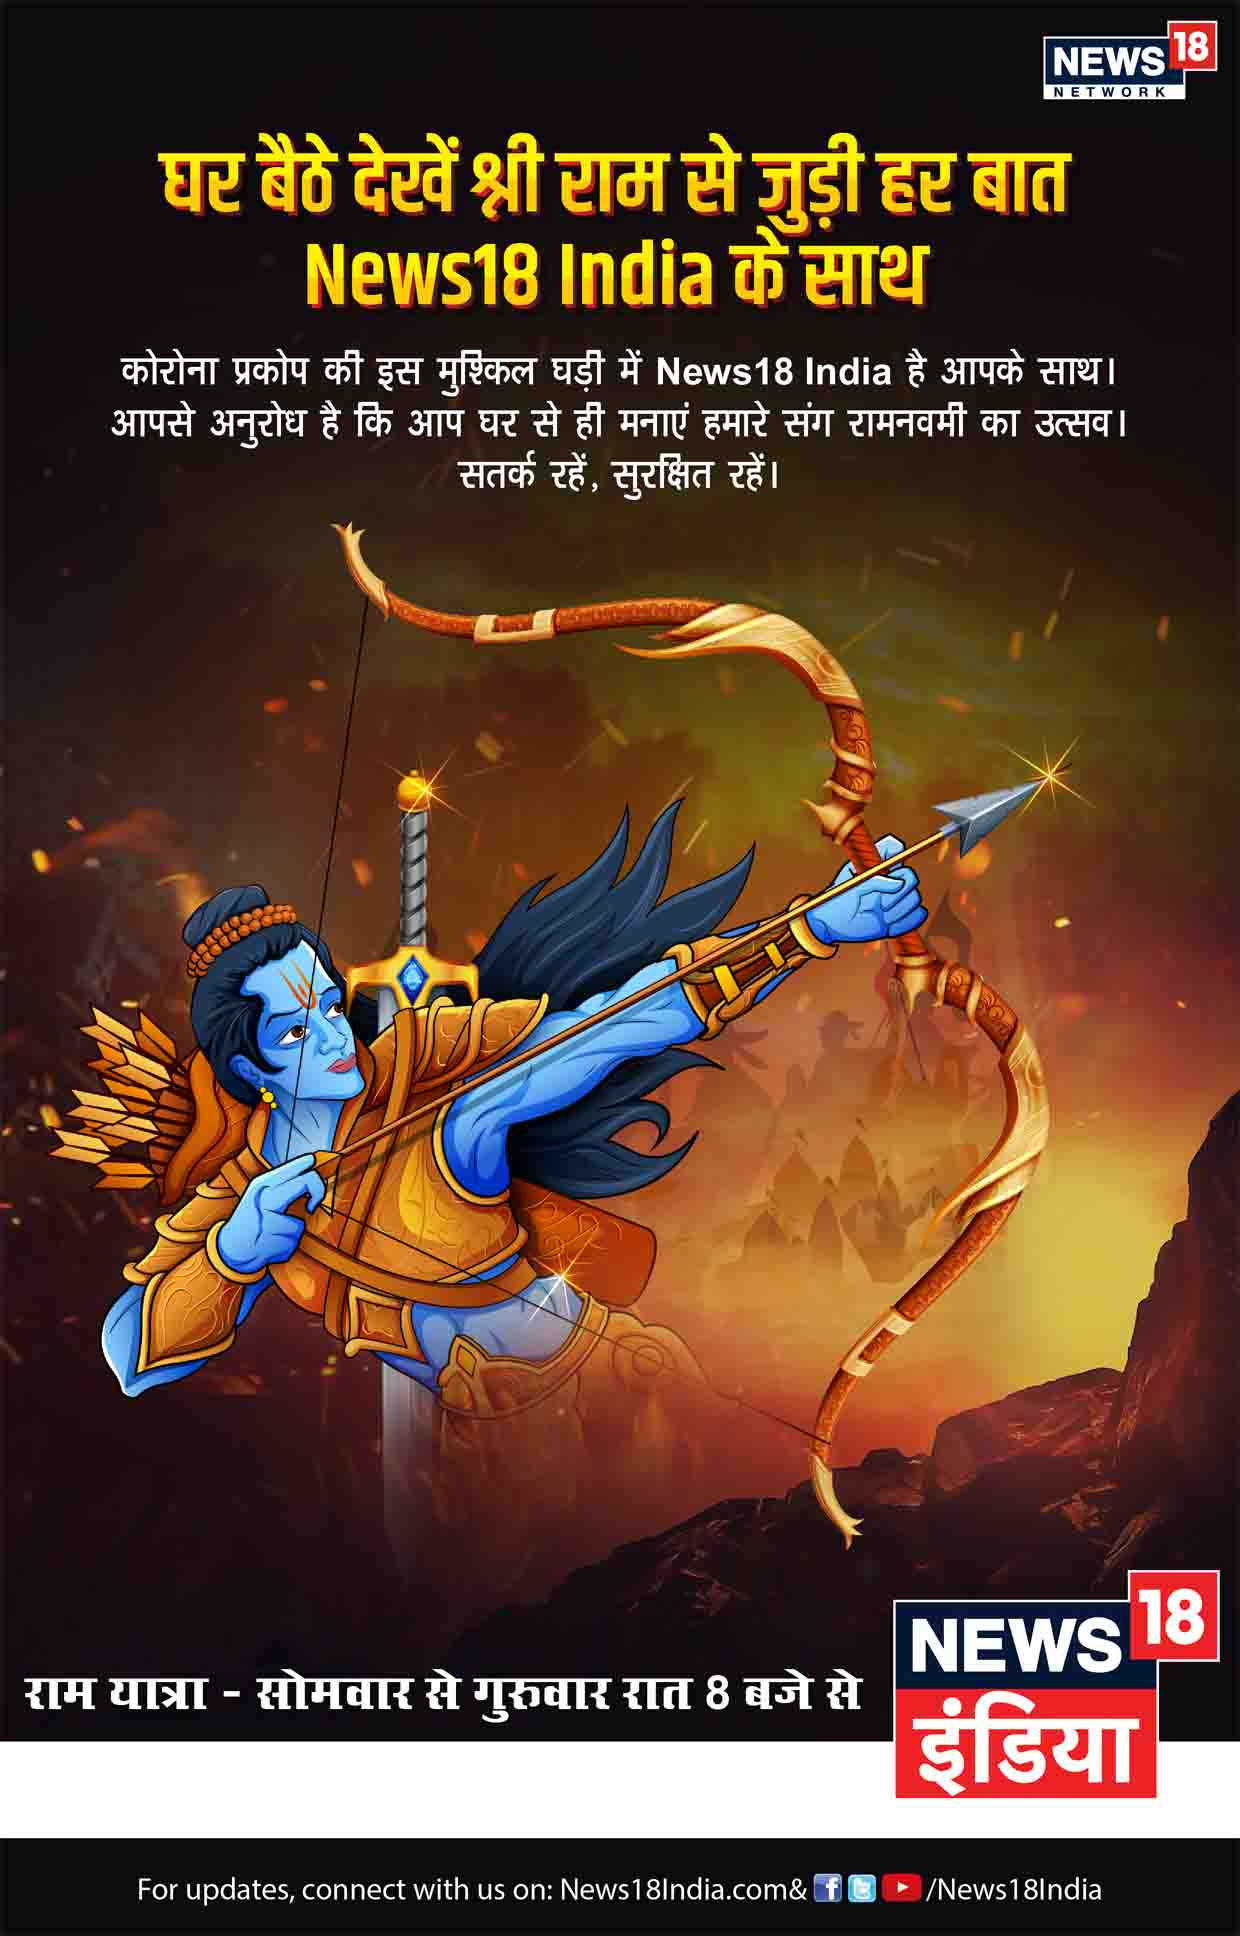 Amid the lockdown, celebrate the festival of Ram Navami with News18 India